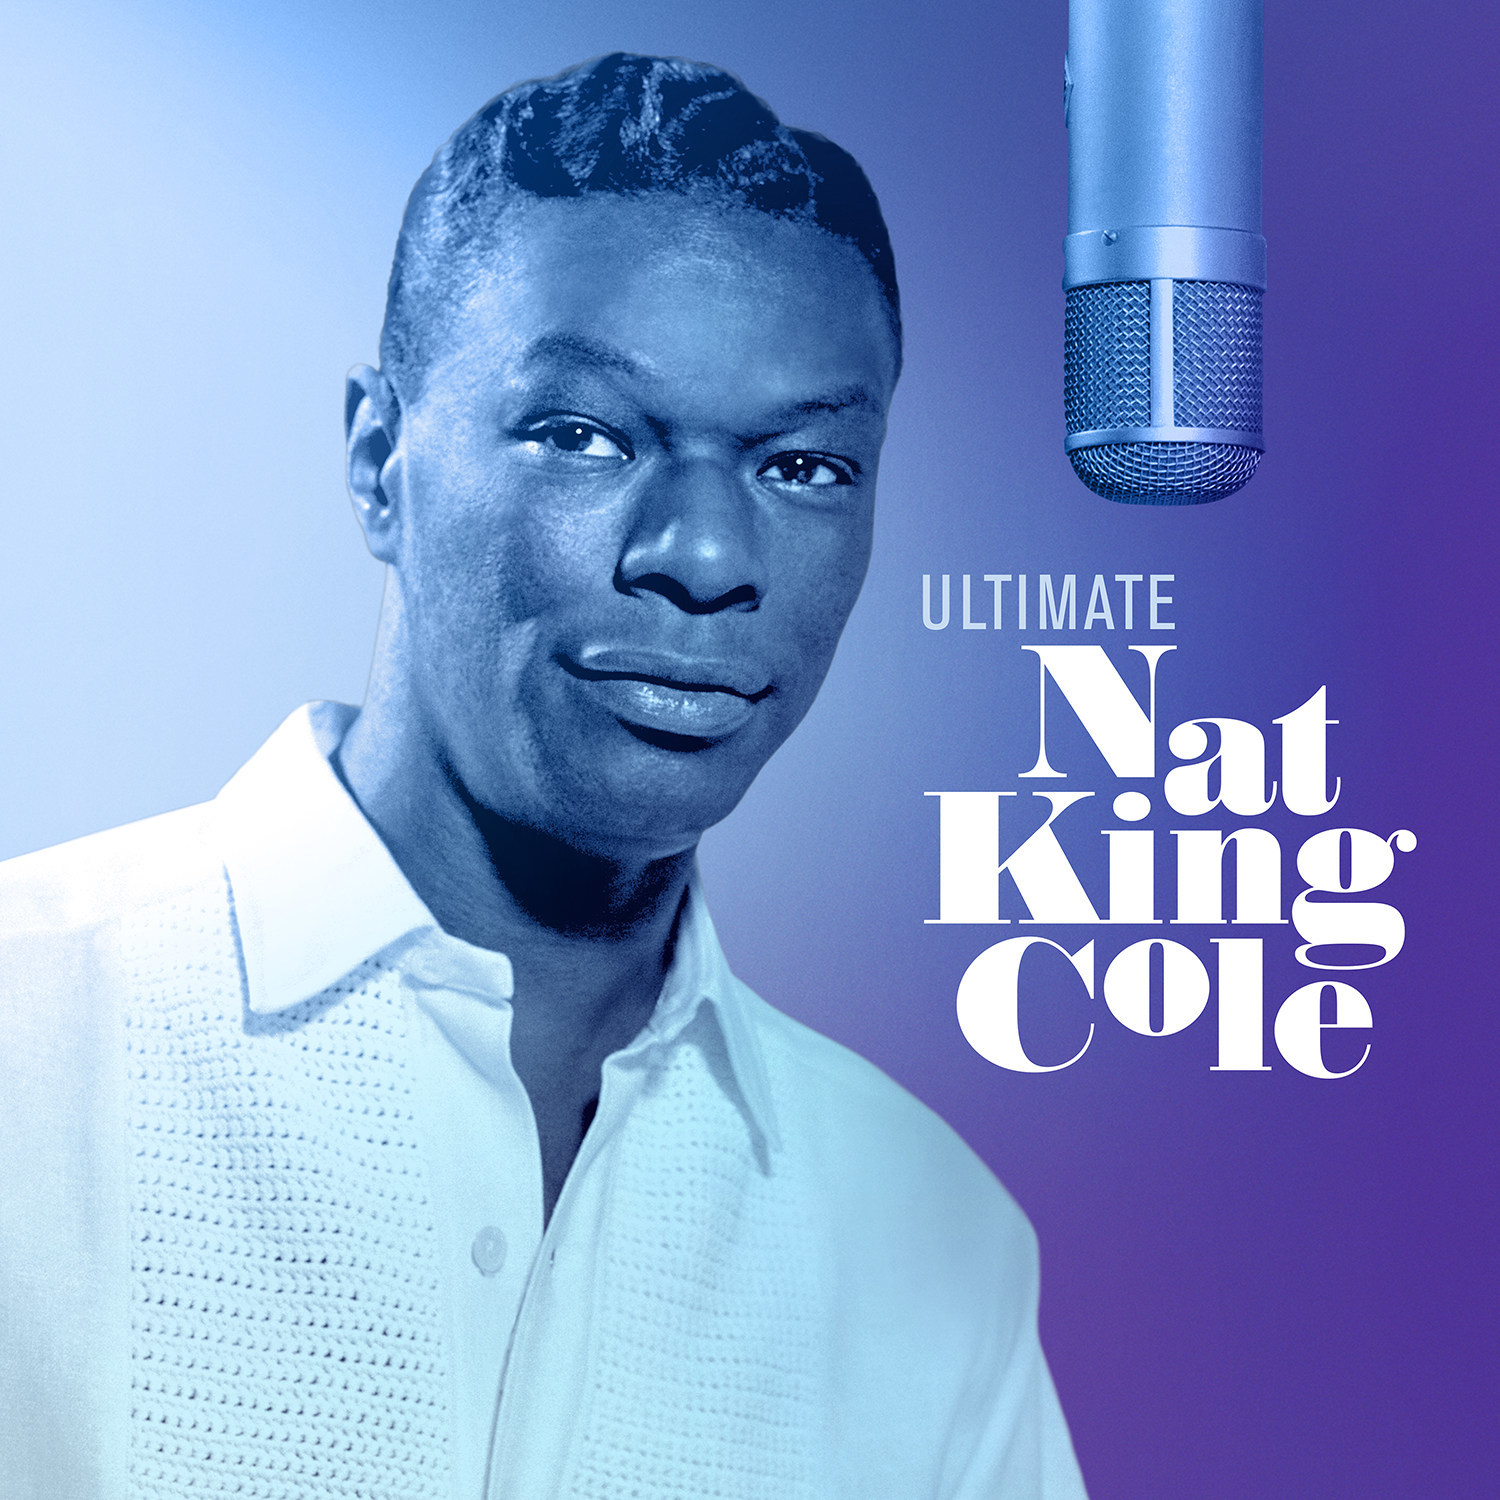 Nat King Cole Centennial Celebration Begins With Special Music Releases